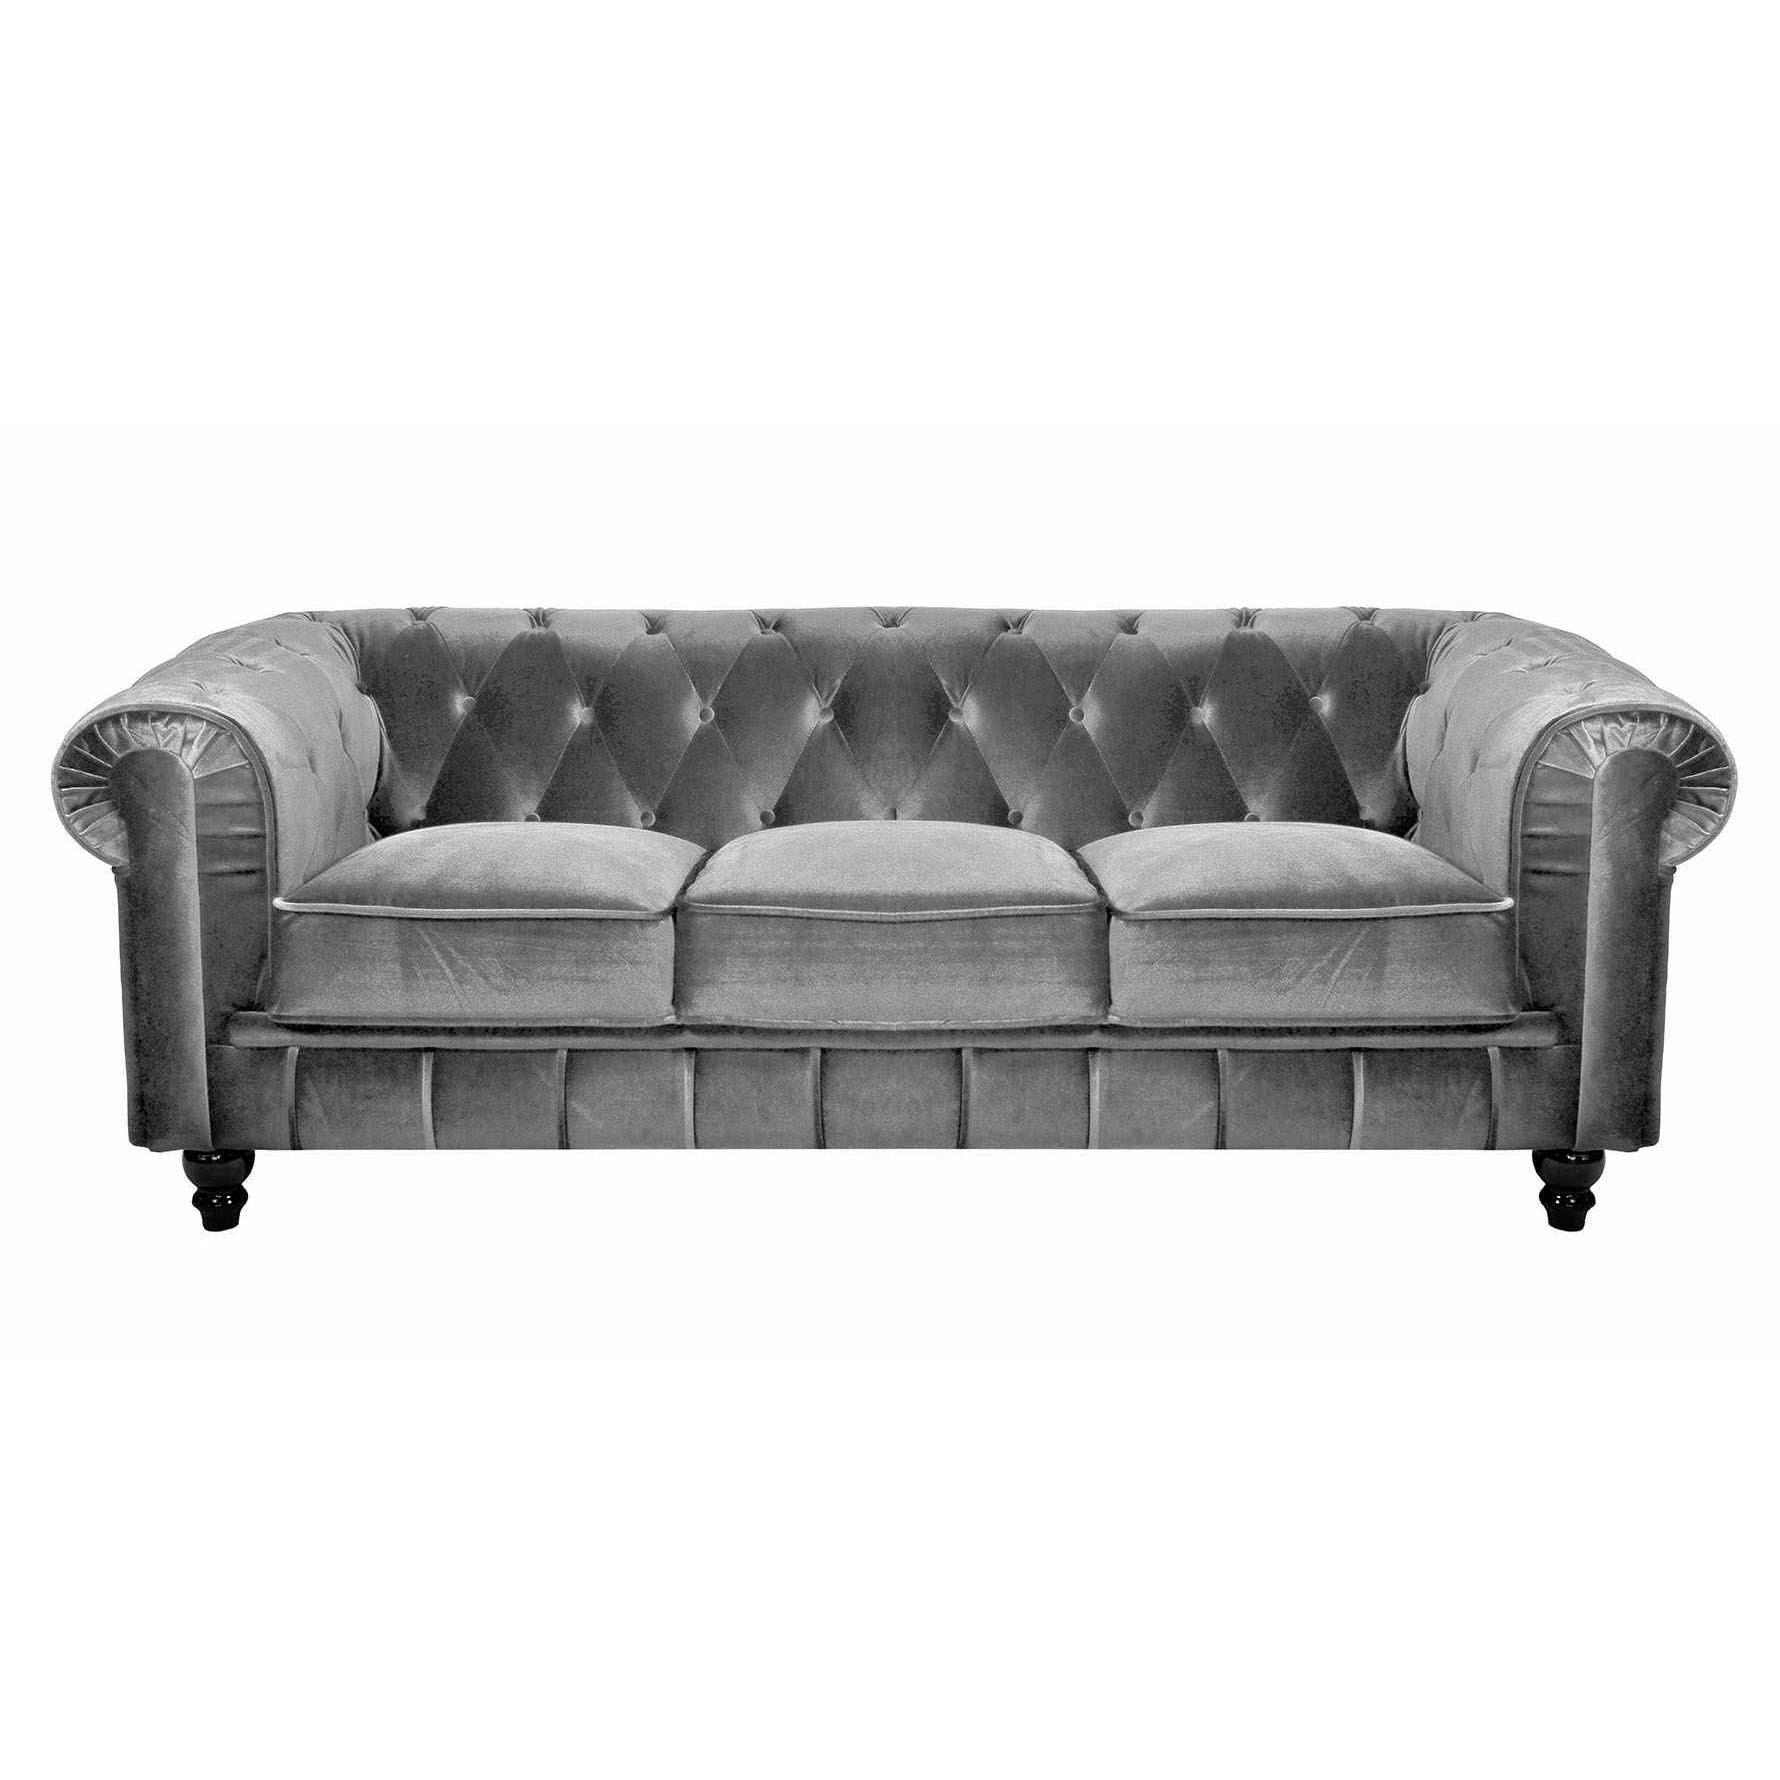 Deco in paris canape 3 places velours gris chesterfield - Salon canape gris ...